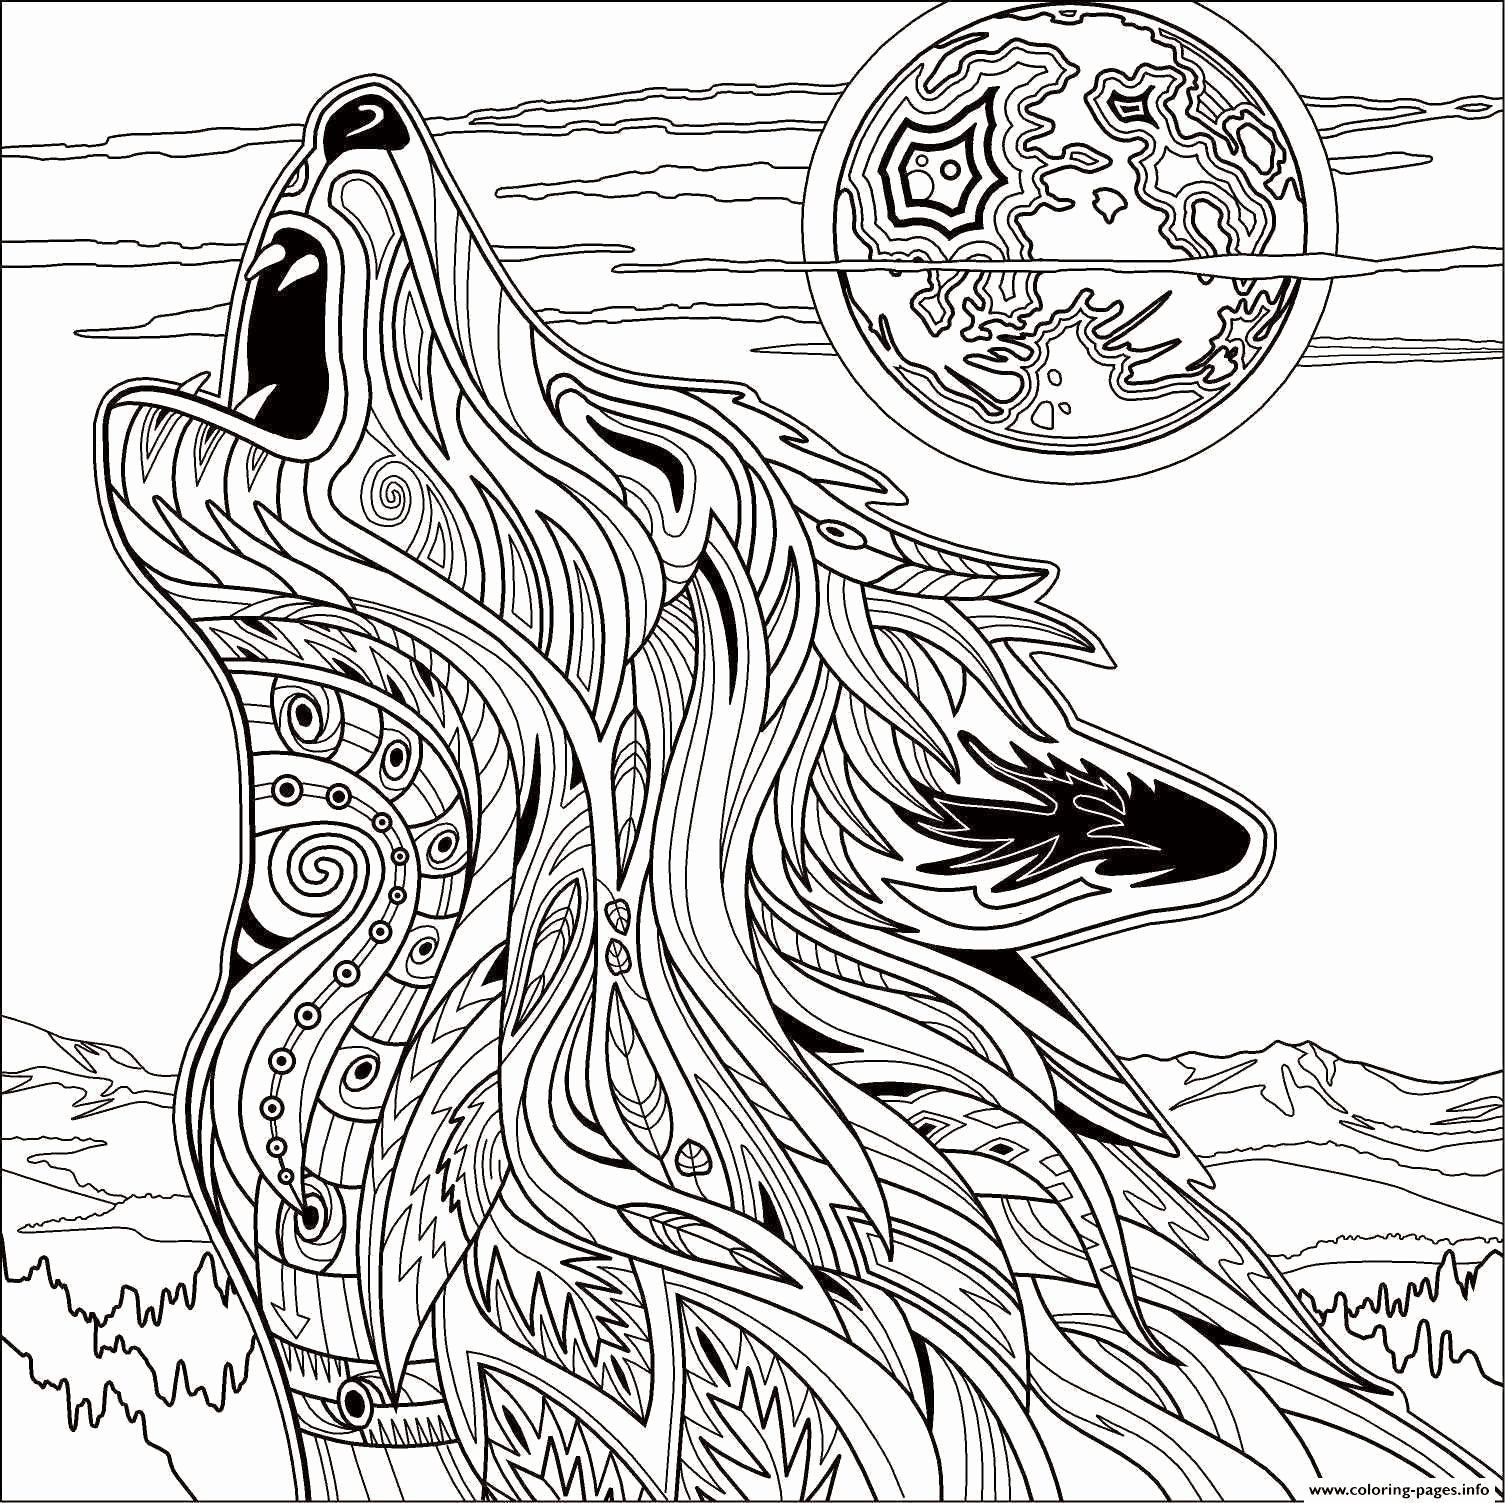 Animal Coloring Pages Hard Beautiful Coloring Pages For Adults Difficult Animals Animal Coloring Pages Wolf Colors Mandala Coloring Pages